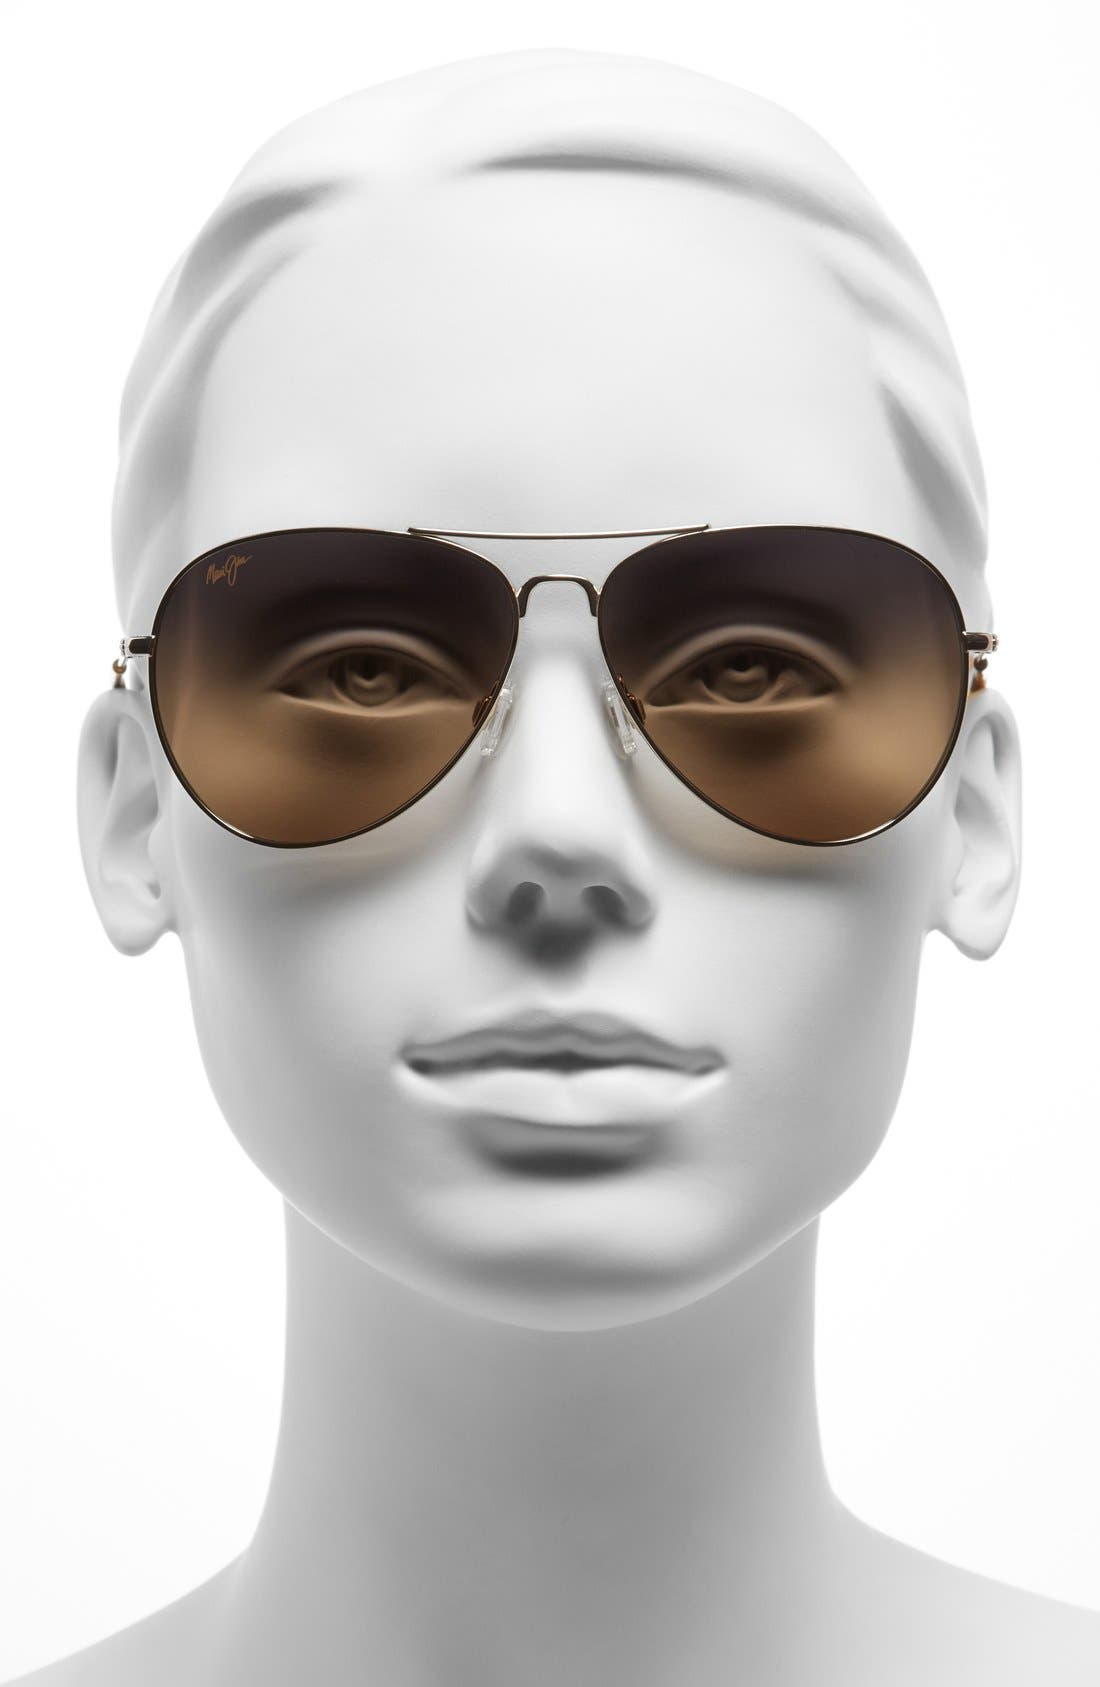 Mavericks 61mm PolarizedPlus2<sup>®</sup> Aviator Sunglasses,                             Alternate thumbnail 2, color,                             GOLD/ BRONZE